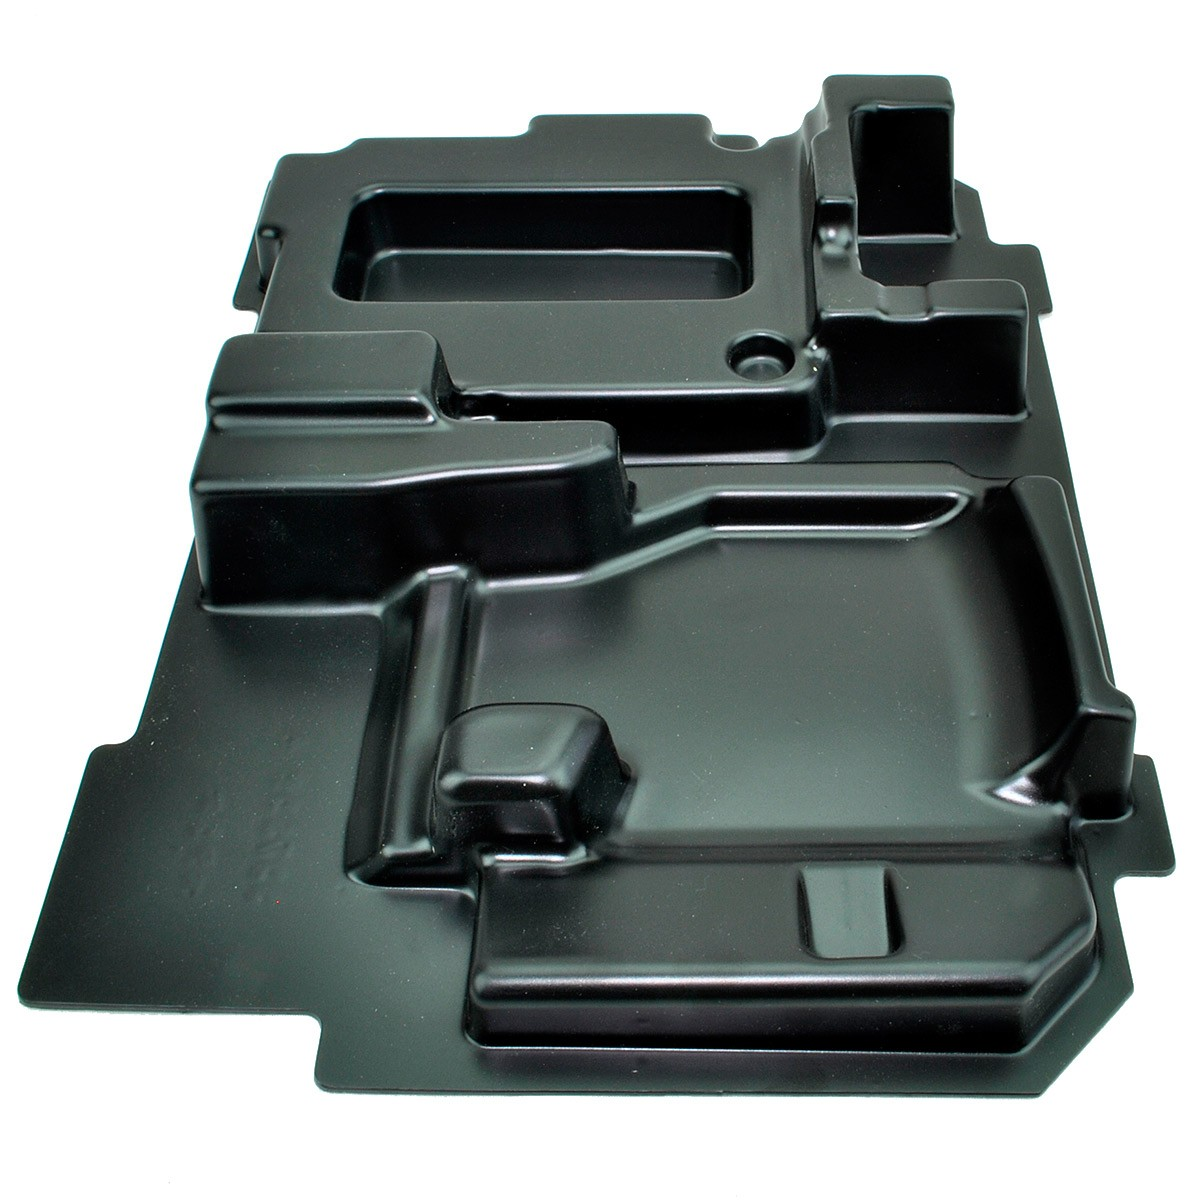 Makita 837639-4 DJV140 DJV180 DJV182 Inlay Tray for Makpac Type 2 Connector Case